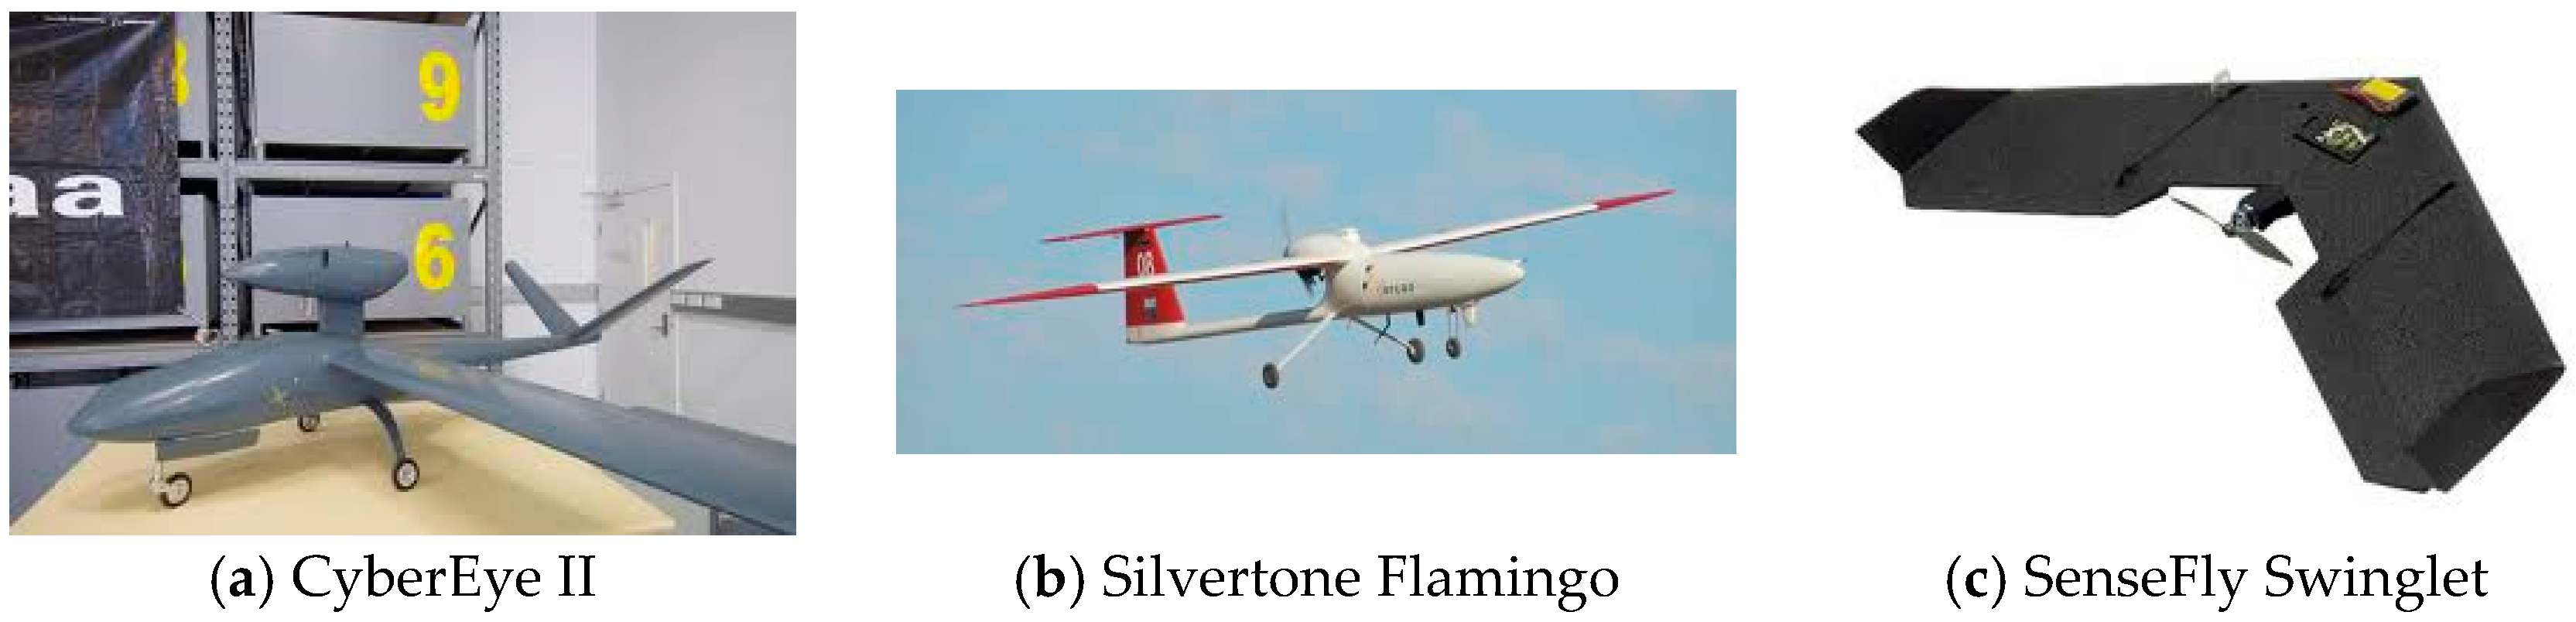 Sensors | Free Full-Text | An Overview of Small Unmanned